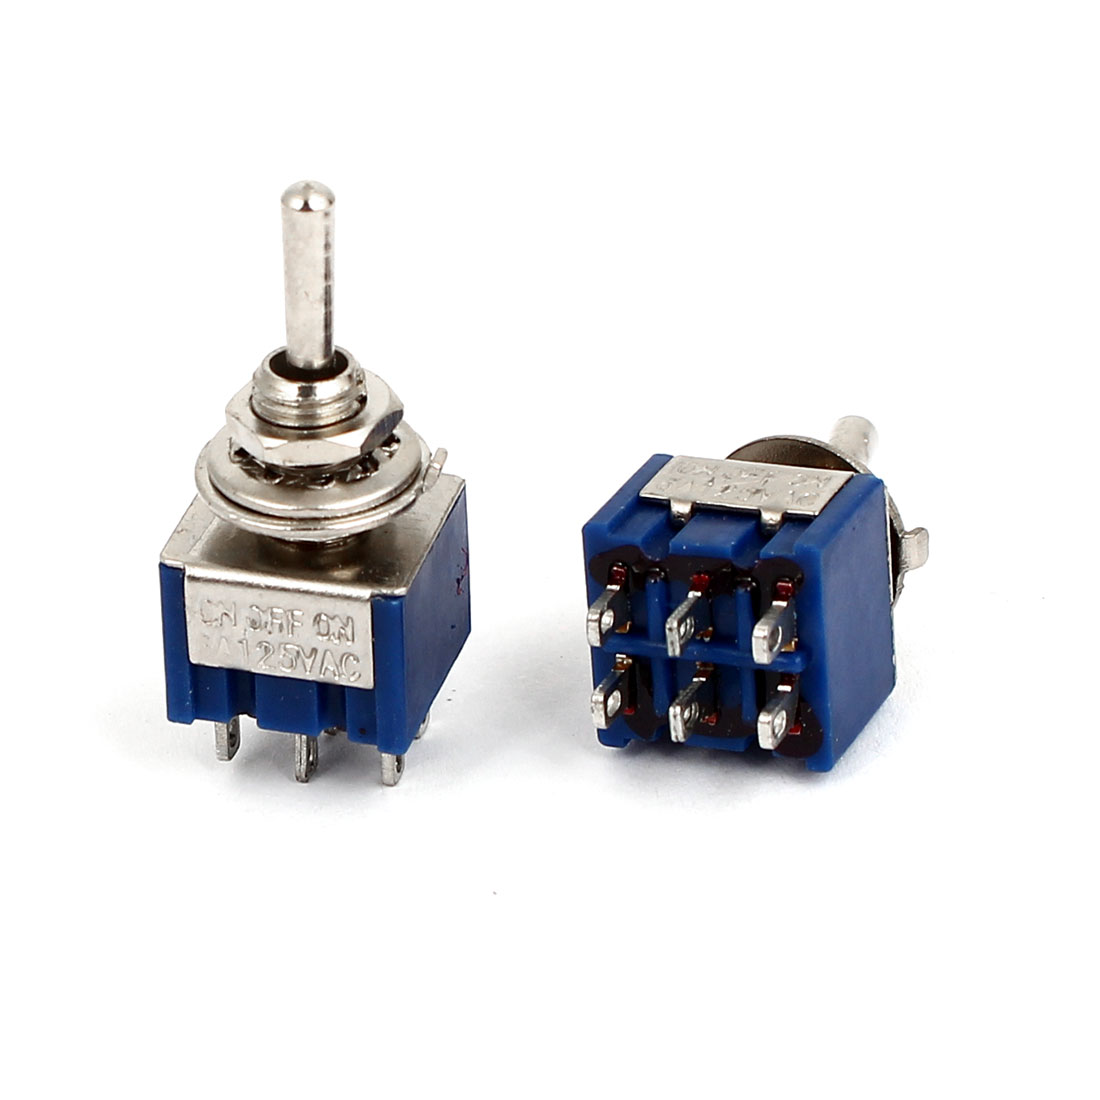 2pcs AC 125V 6A 6Pin 3 Positions ON-OFF 6mm Thread DPDT Latching Mini Toggle Switch Blue